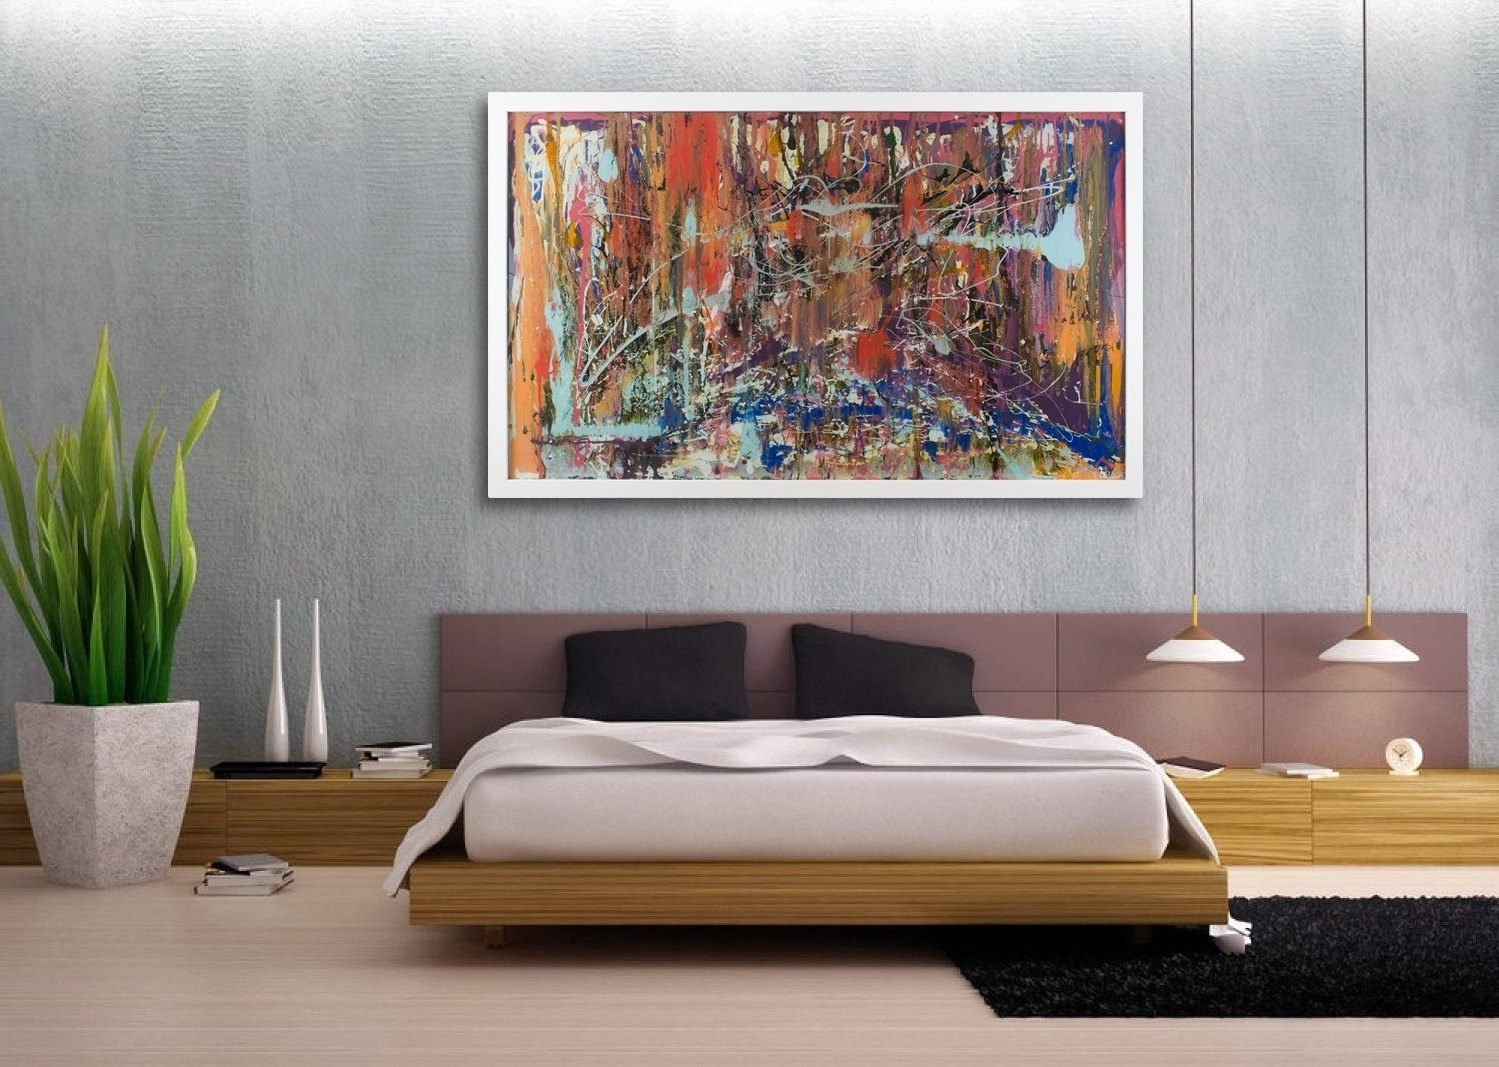 Extra Large Wall Art – Levitrafer Intended For Current Extra Large Wall Art (View 9 of 20)